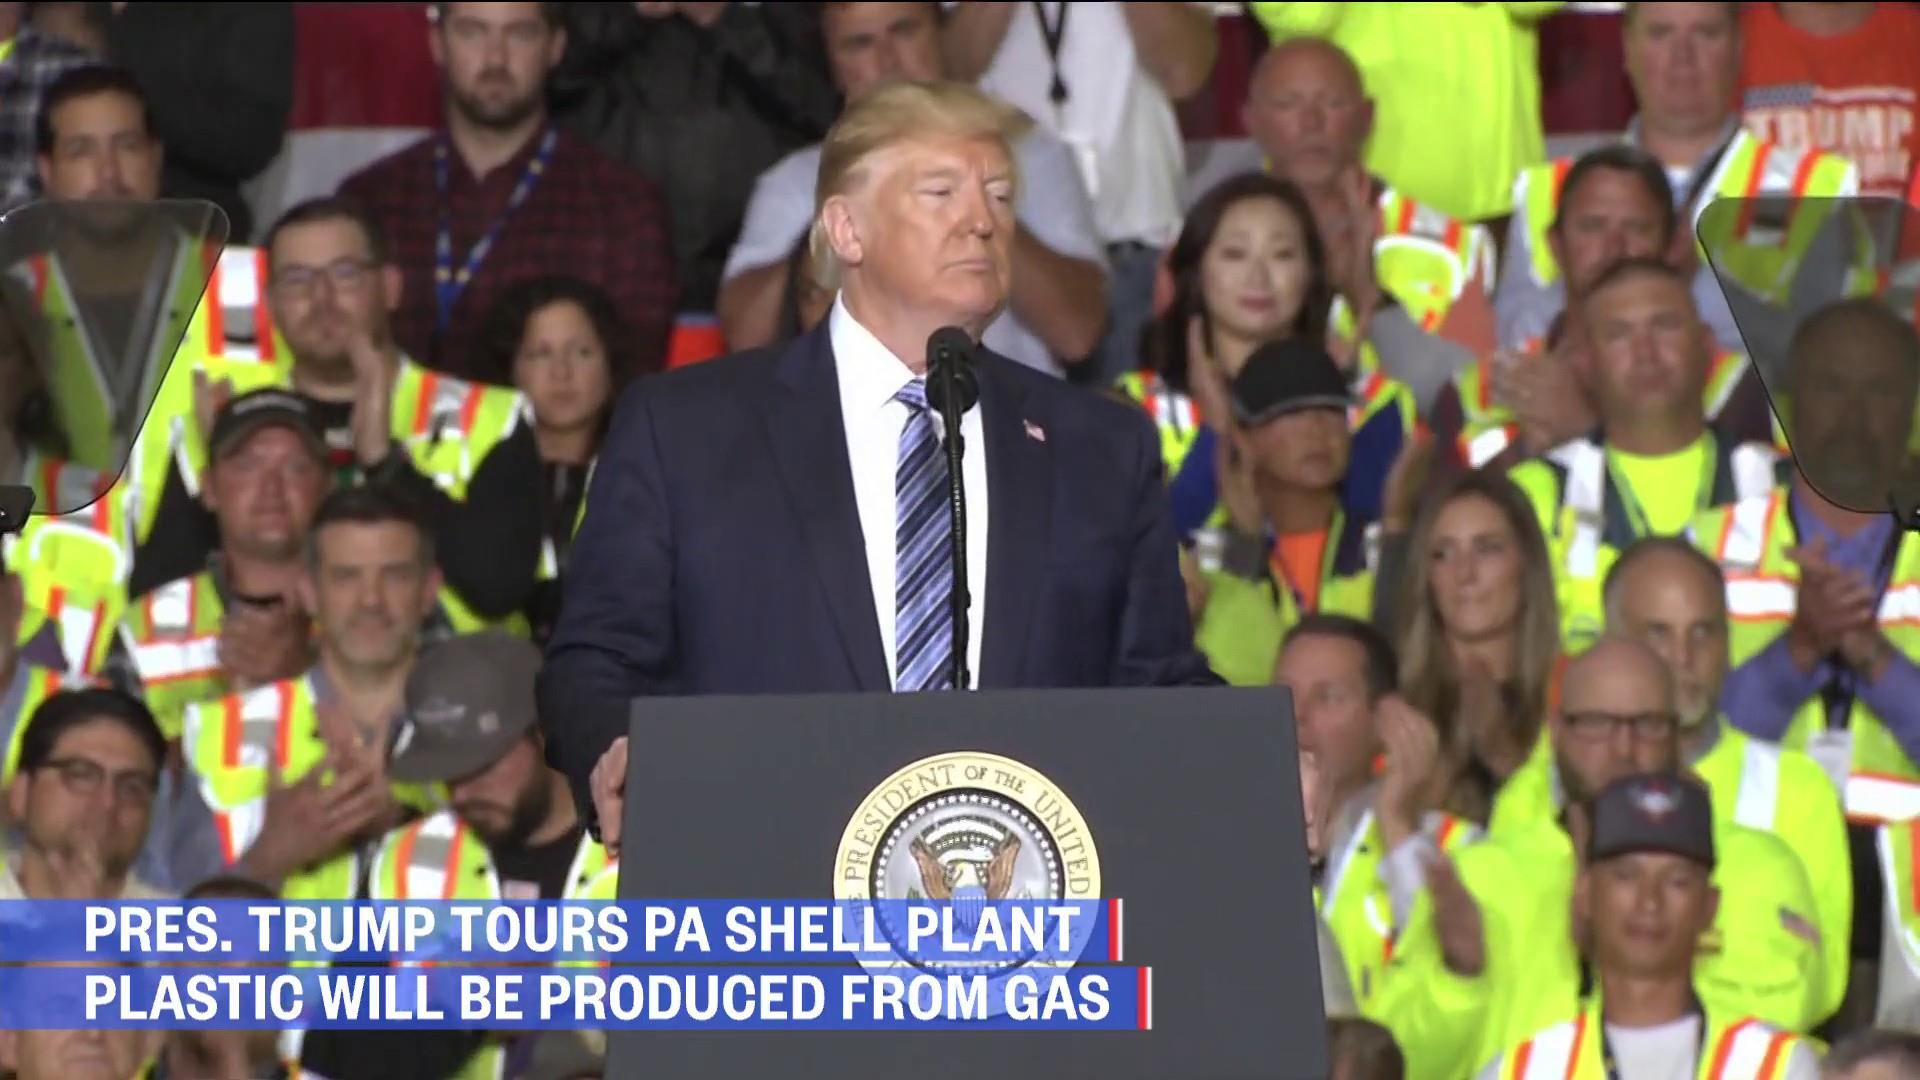 Trump at Shell plant vows to restore 'the glory of American manufacturing'